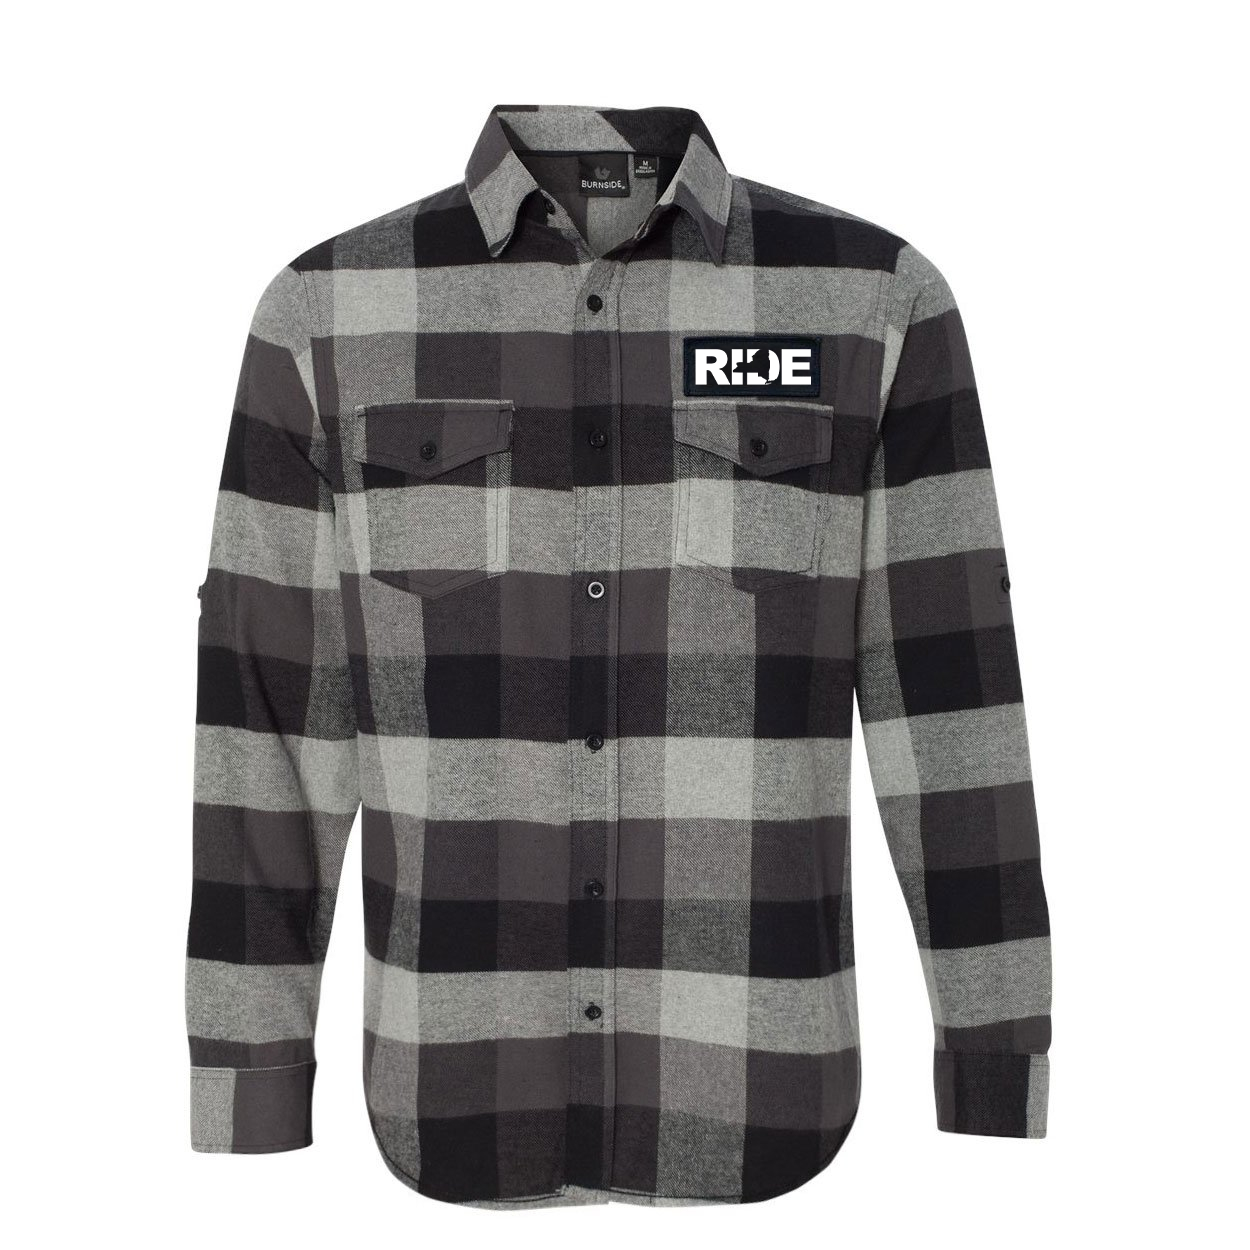 Ride New York Classic Unisex Long Sleeve Woven Patch Flannel Shirt Black/Gray (White Logo)